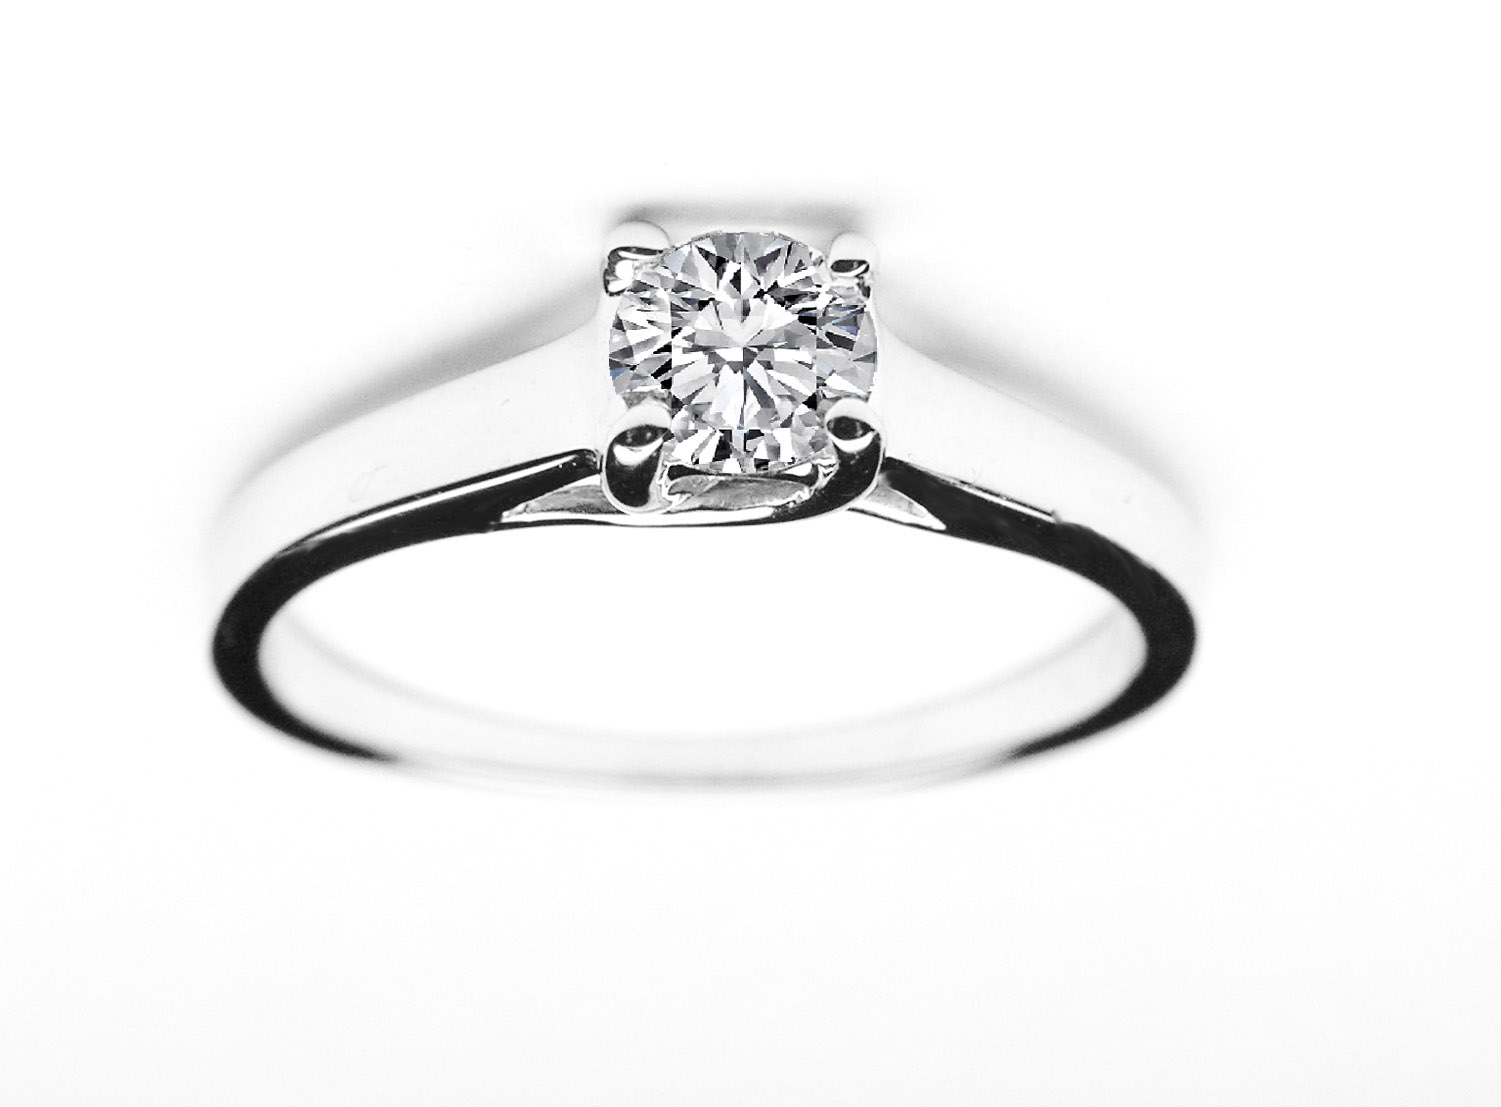 Classic Solitaire Diamond Trellis Engagement Ring in 14K White Gold for a Small Diamond